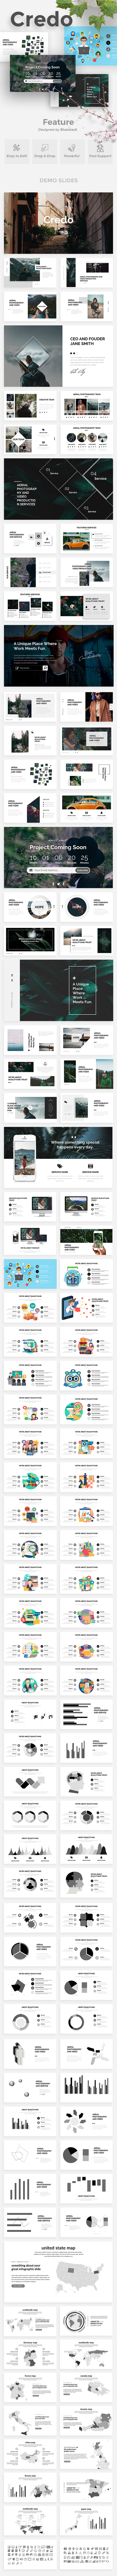 GraphicRiver Credo Creative Google Slide Template 21133590